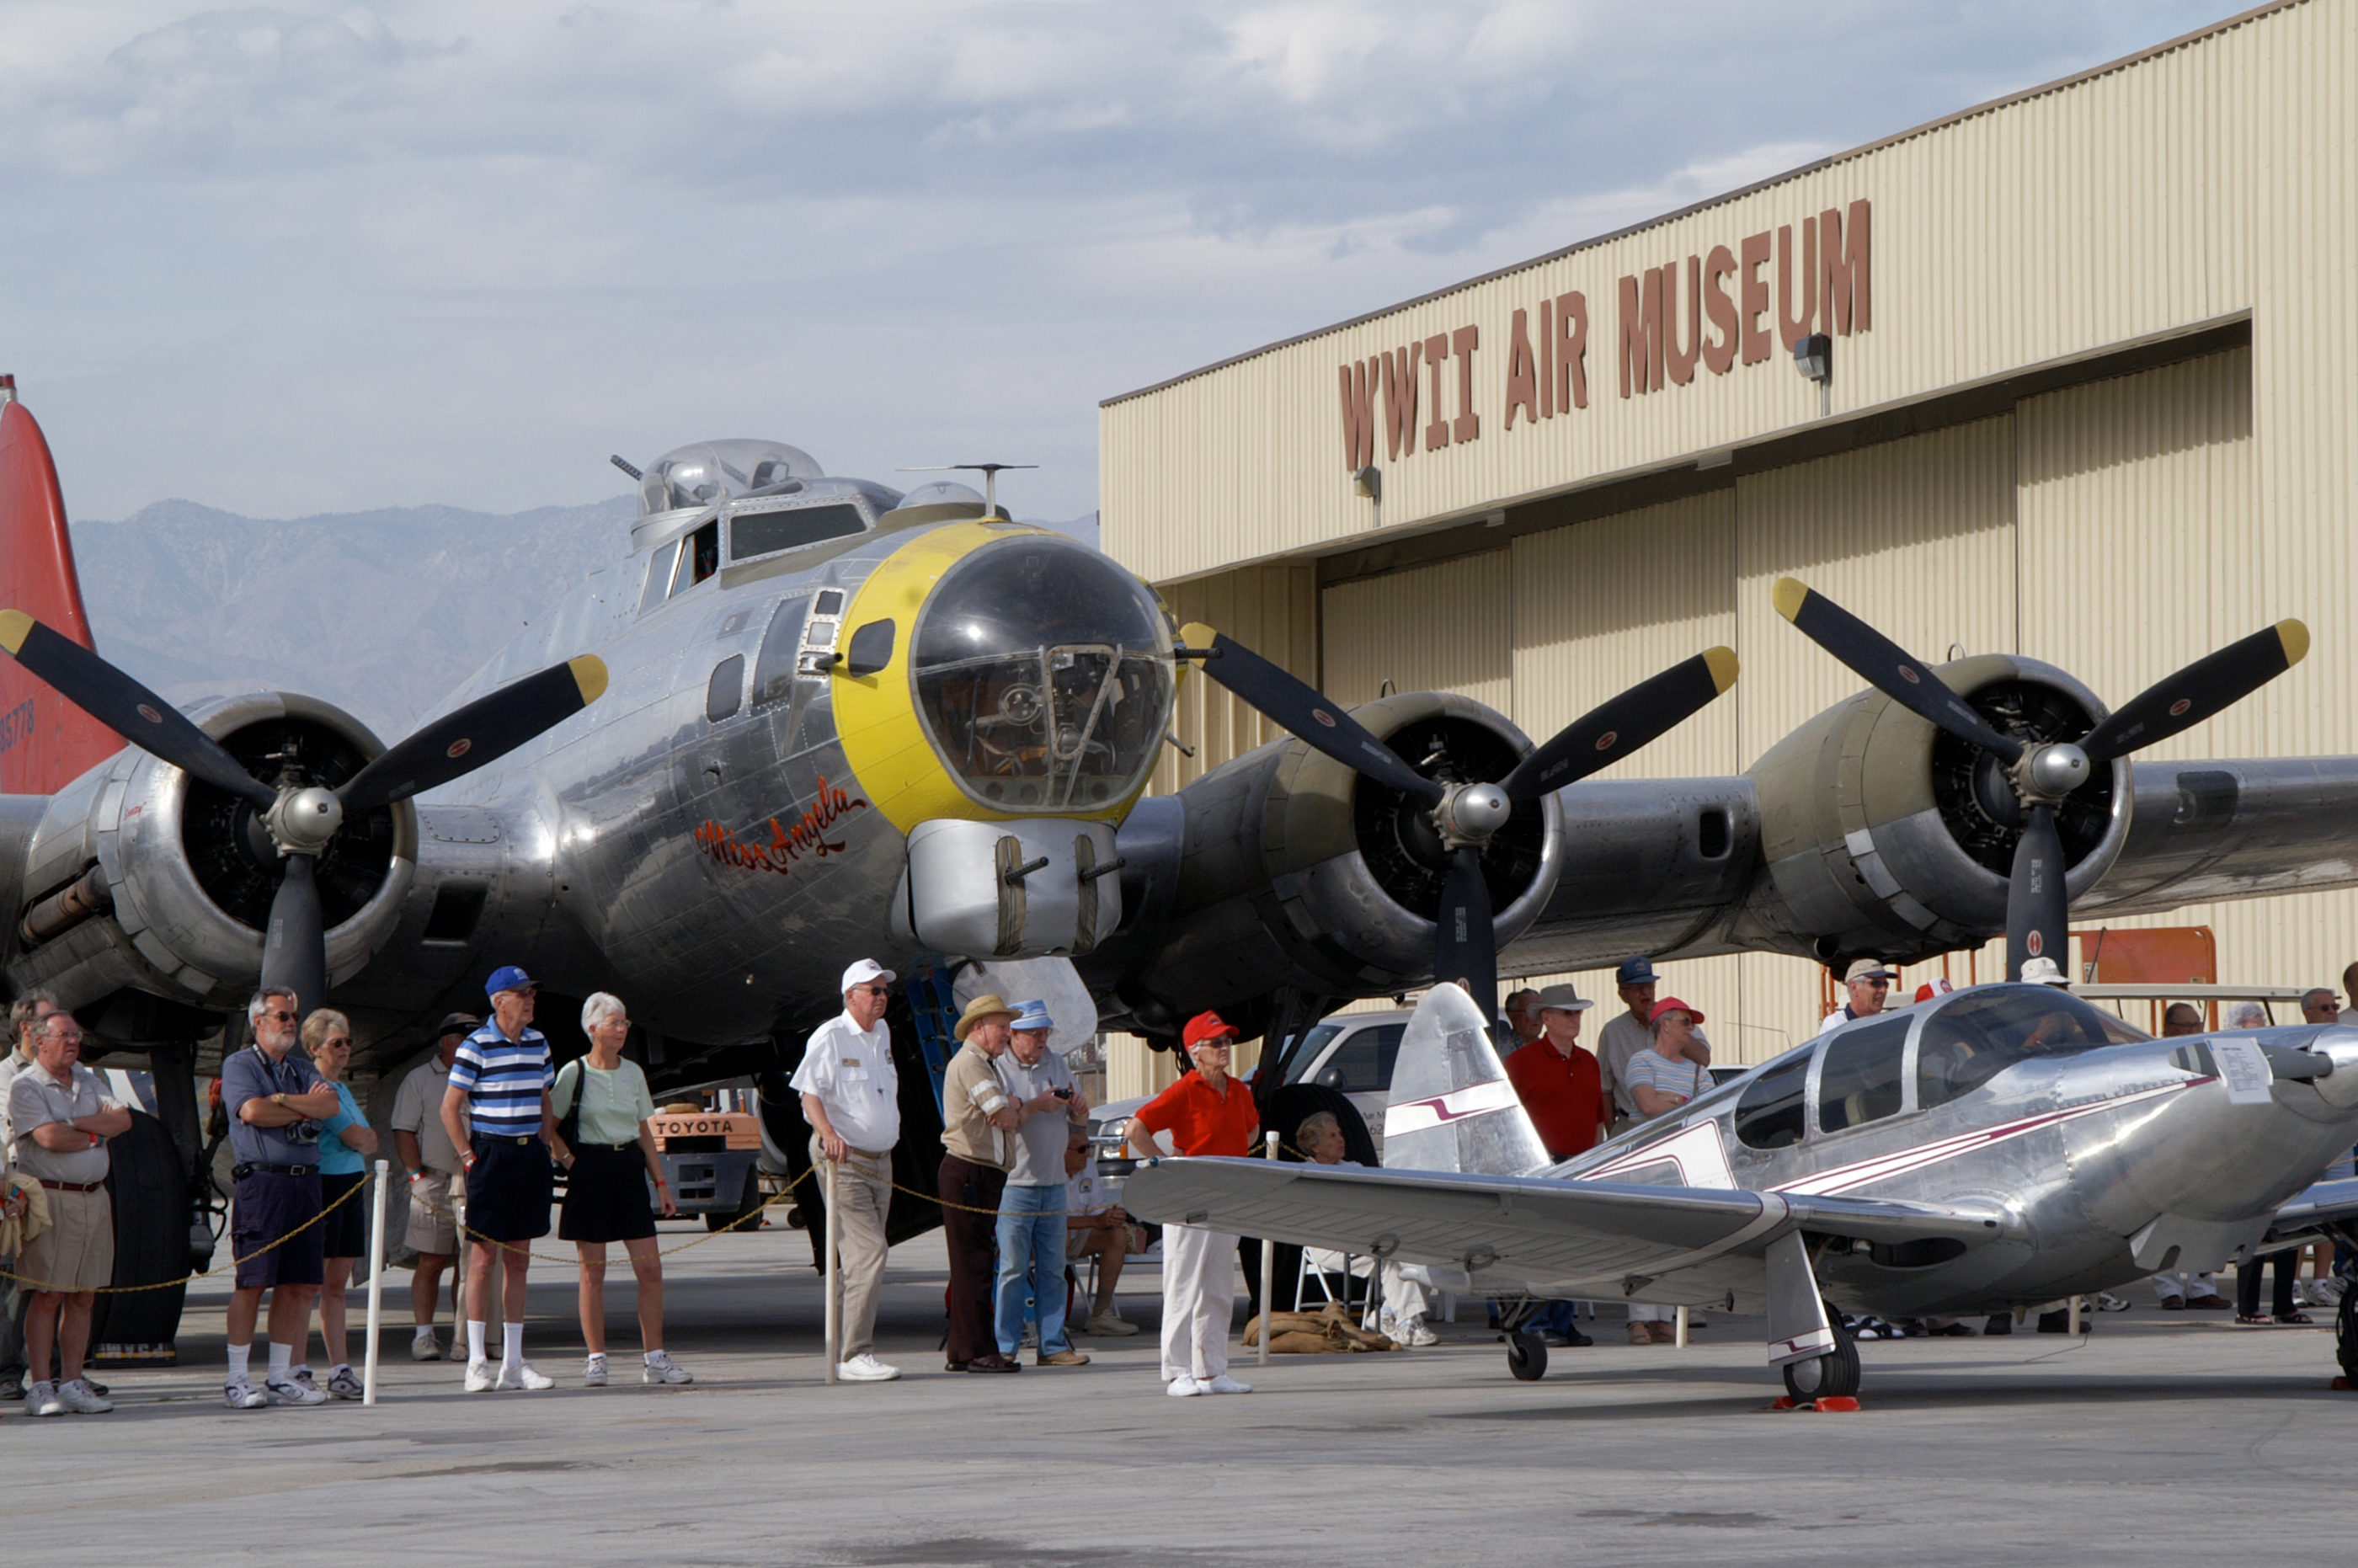 Guests stand outside under a large vintage aircraft.